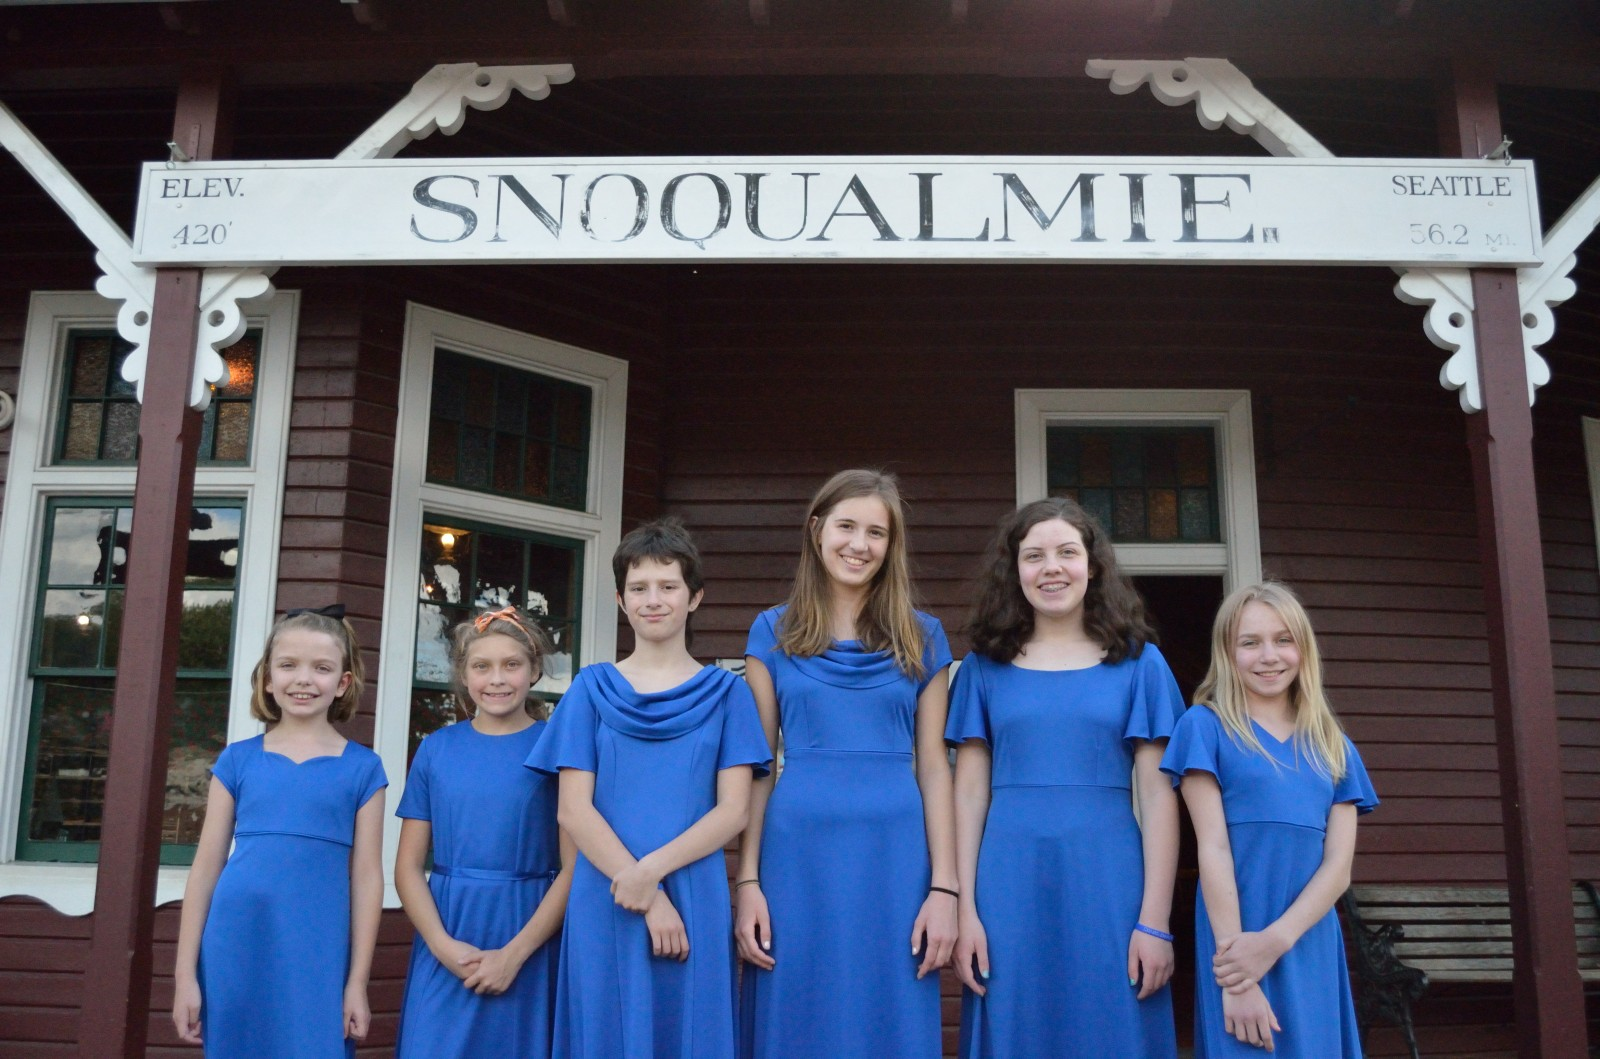 Snoqualmie Valley Girls' Choir